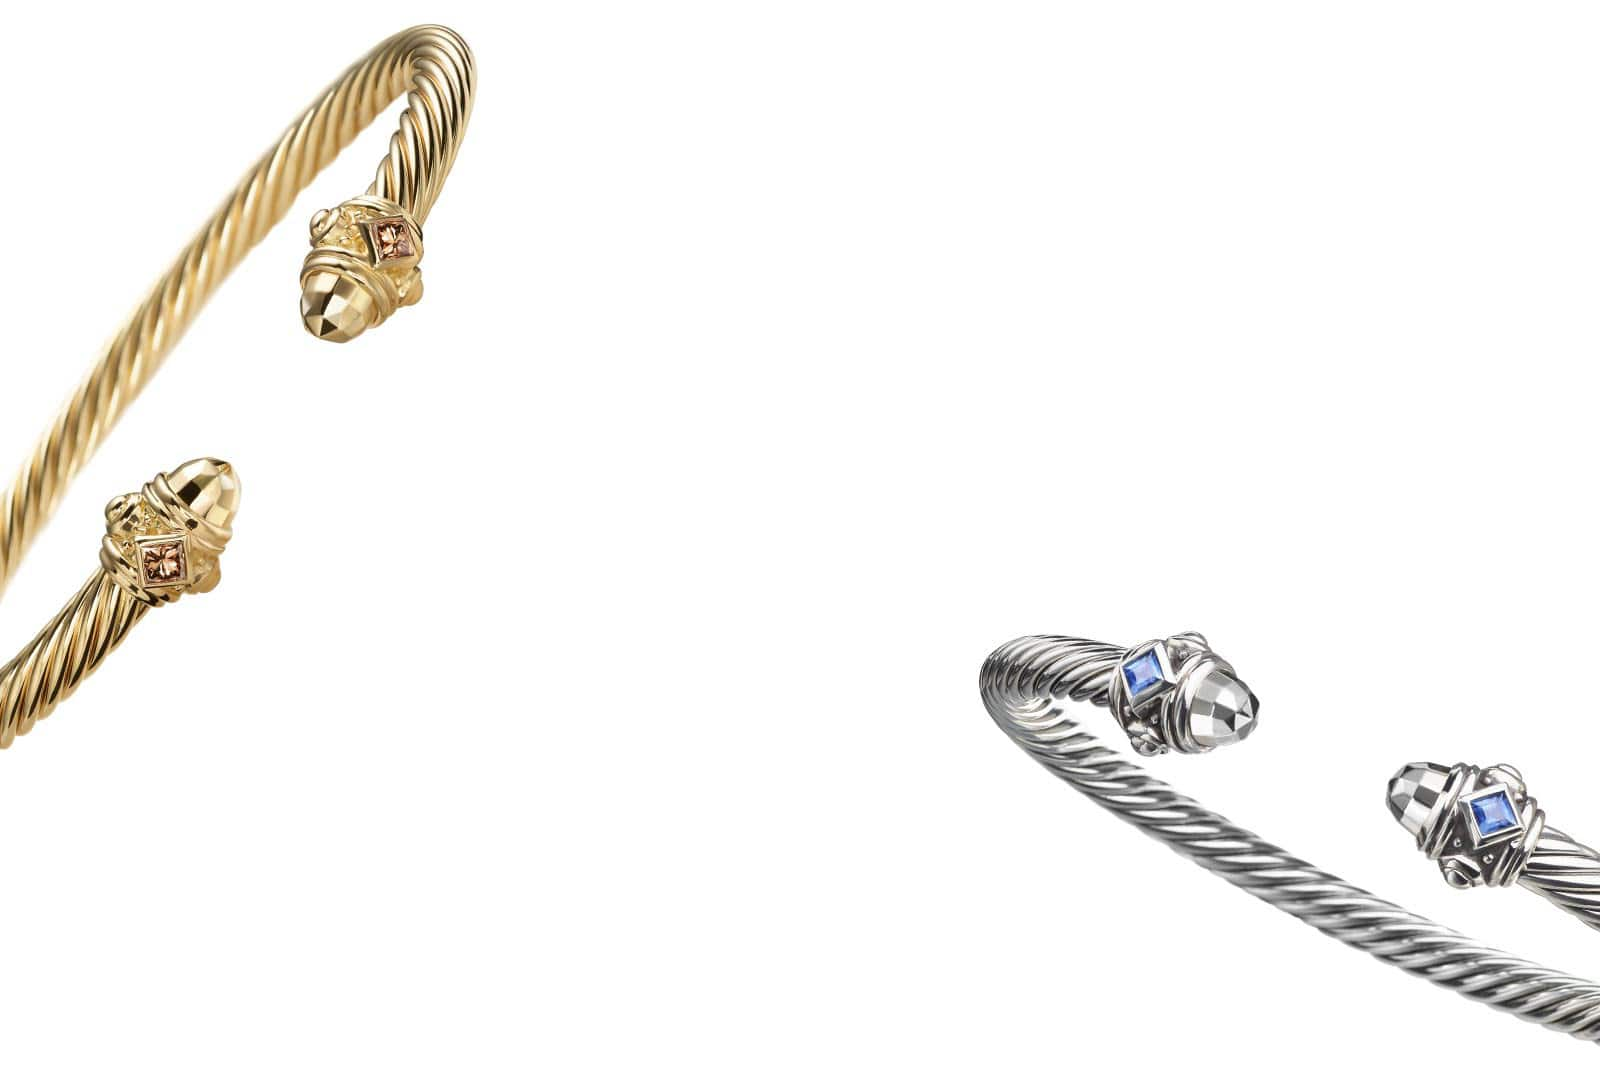 Un bracelet de la collection Renaissance en or jaune 18K avec diamants champagne incliné contre un fond blanc.